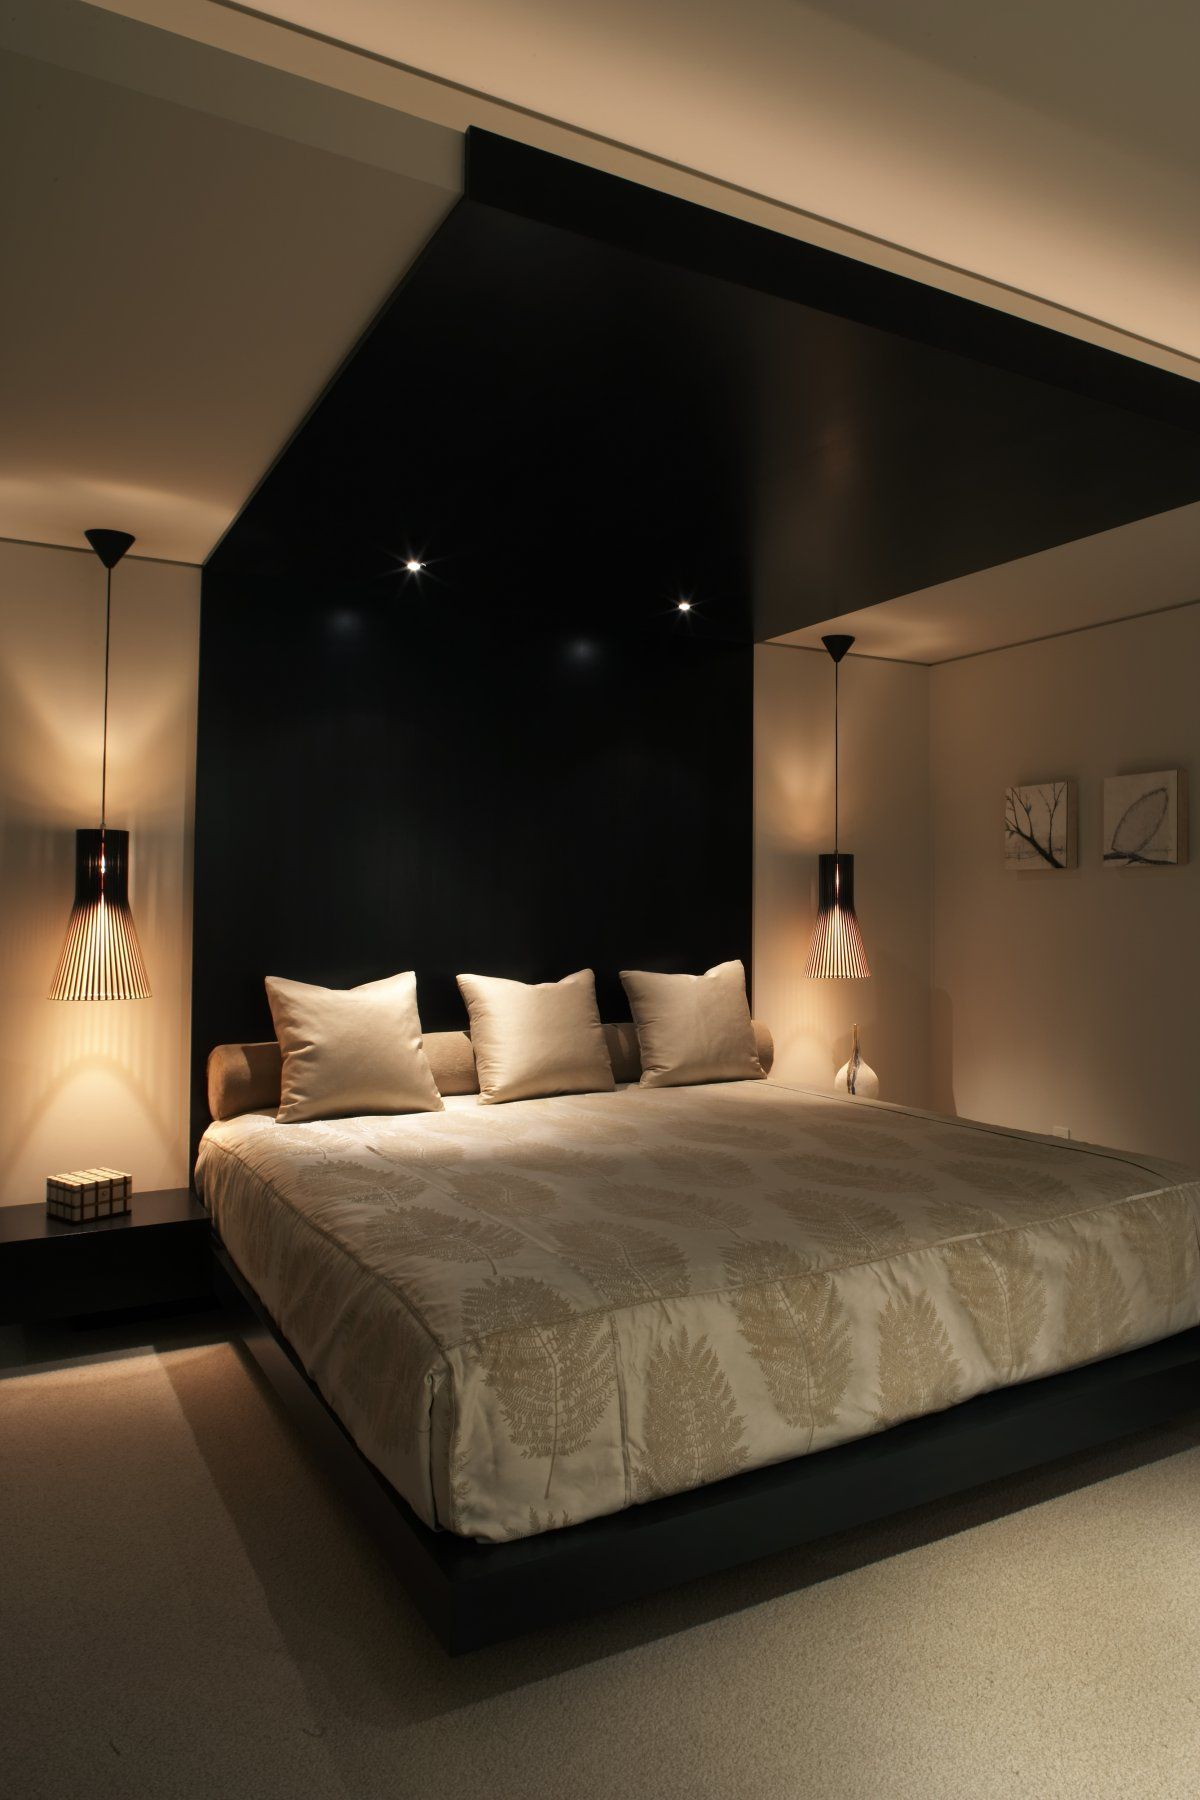 If, This Is The Time To Concerning Restoring Your Bedroom